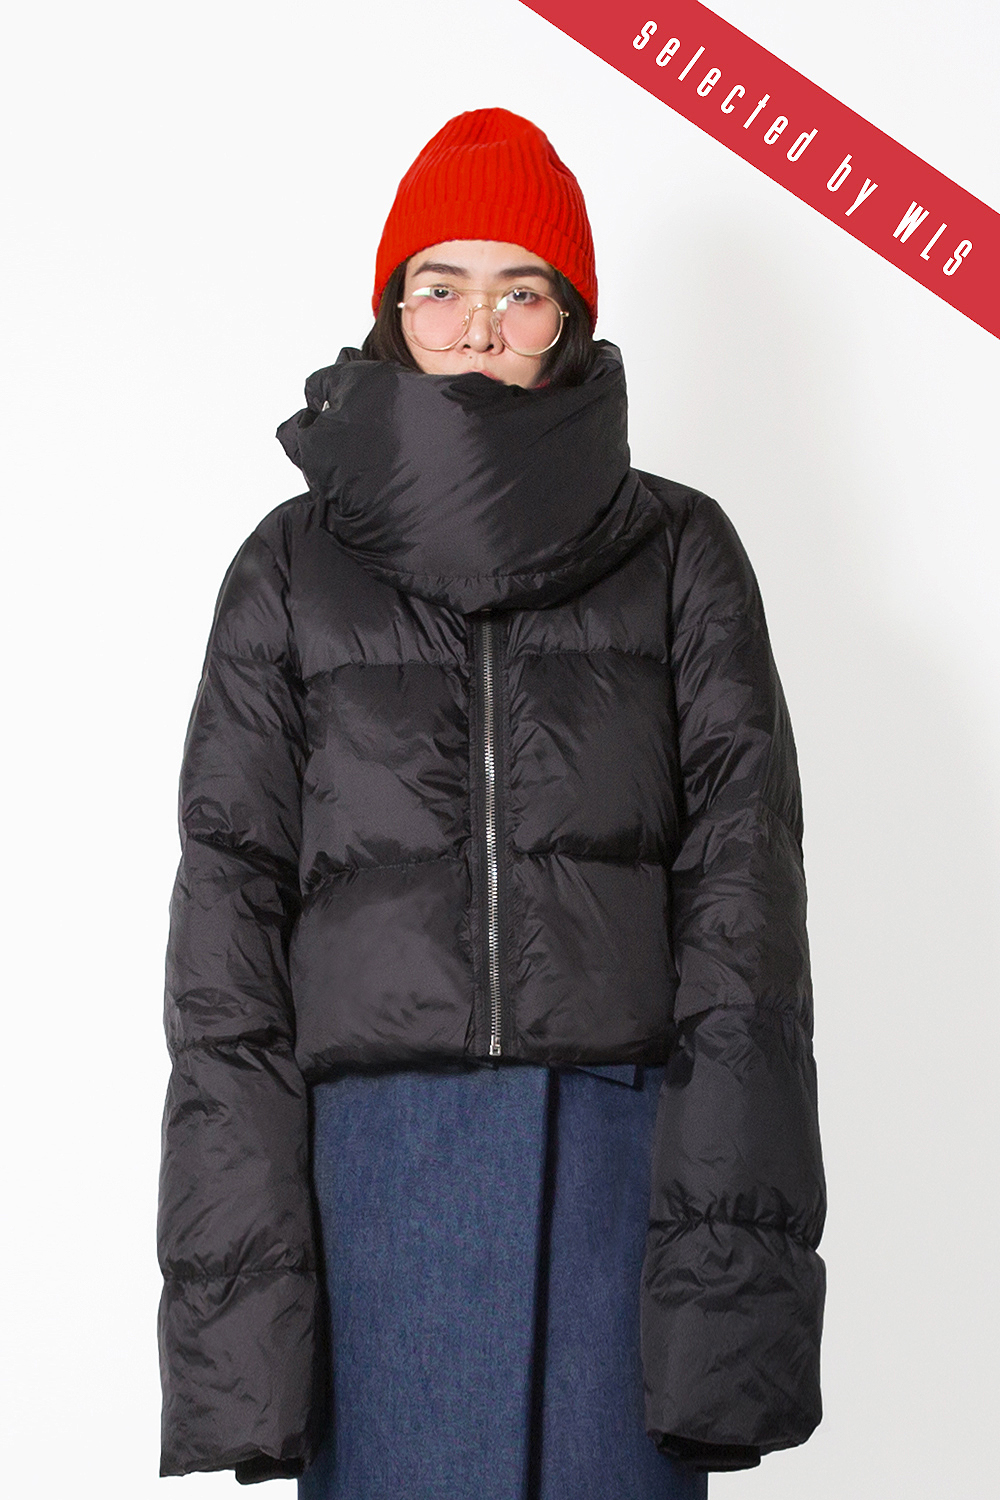 Oversized Puffer Down Jacket (Extra Long Sleeves)  Selected by WLS